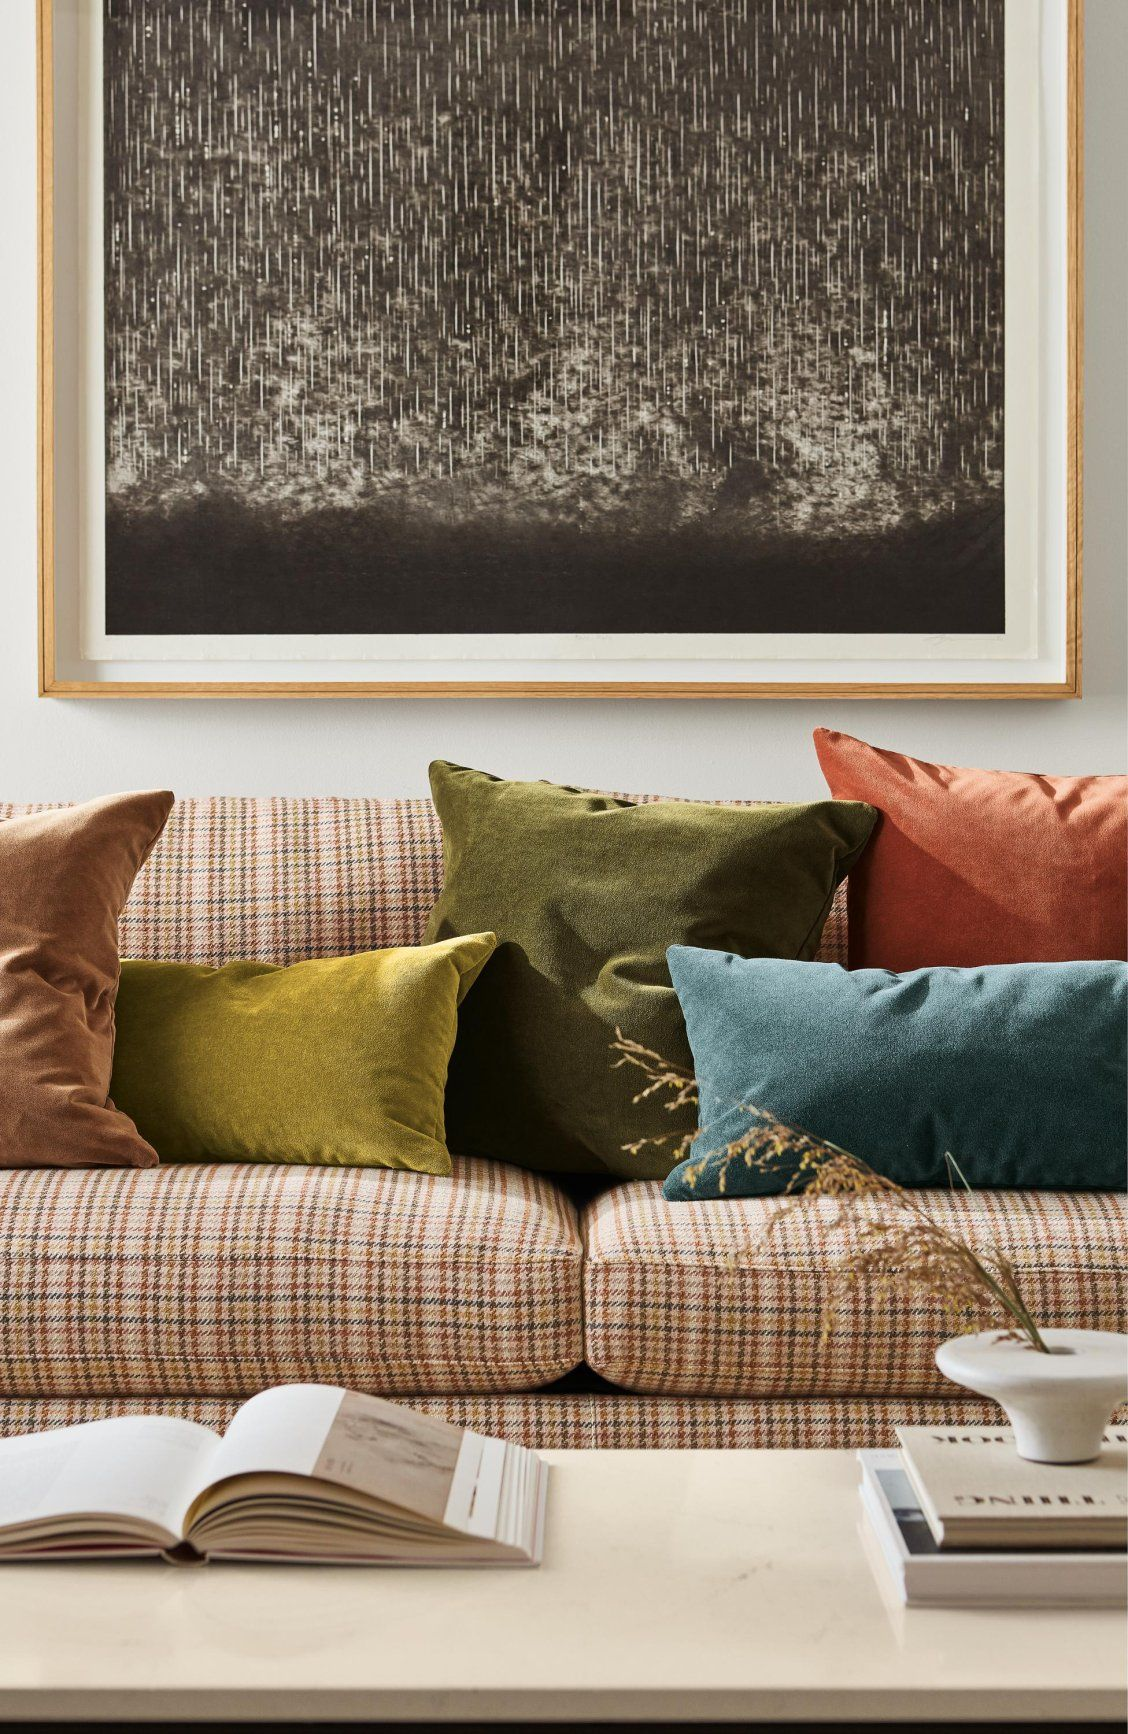 Soft And Luxurious These Pillows Are A Rich Addition To Any Sofa Or Chair With Their Plush Texture And Down Insert You L In 2021 Pillows Home Decor Home Furnishings